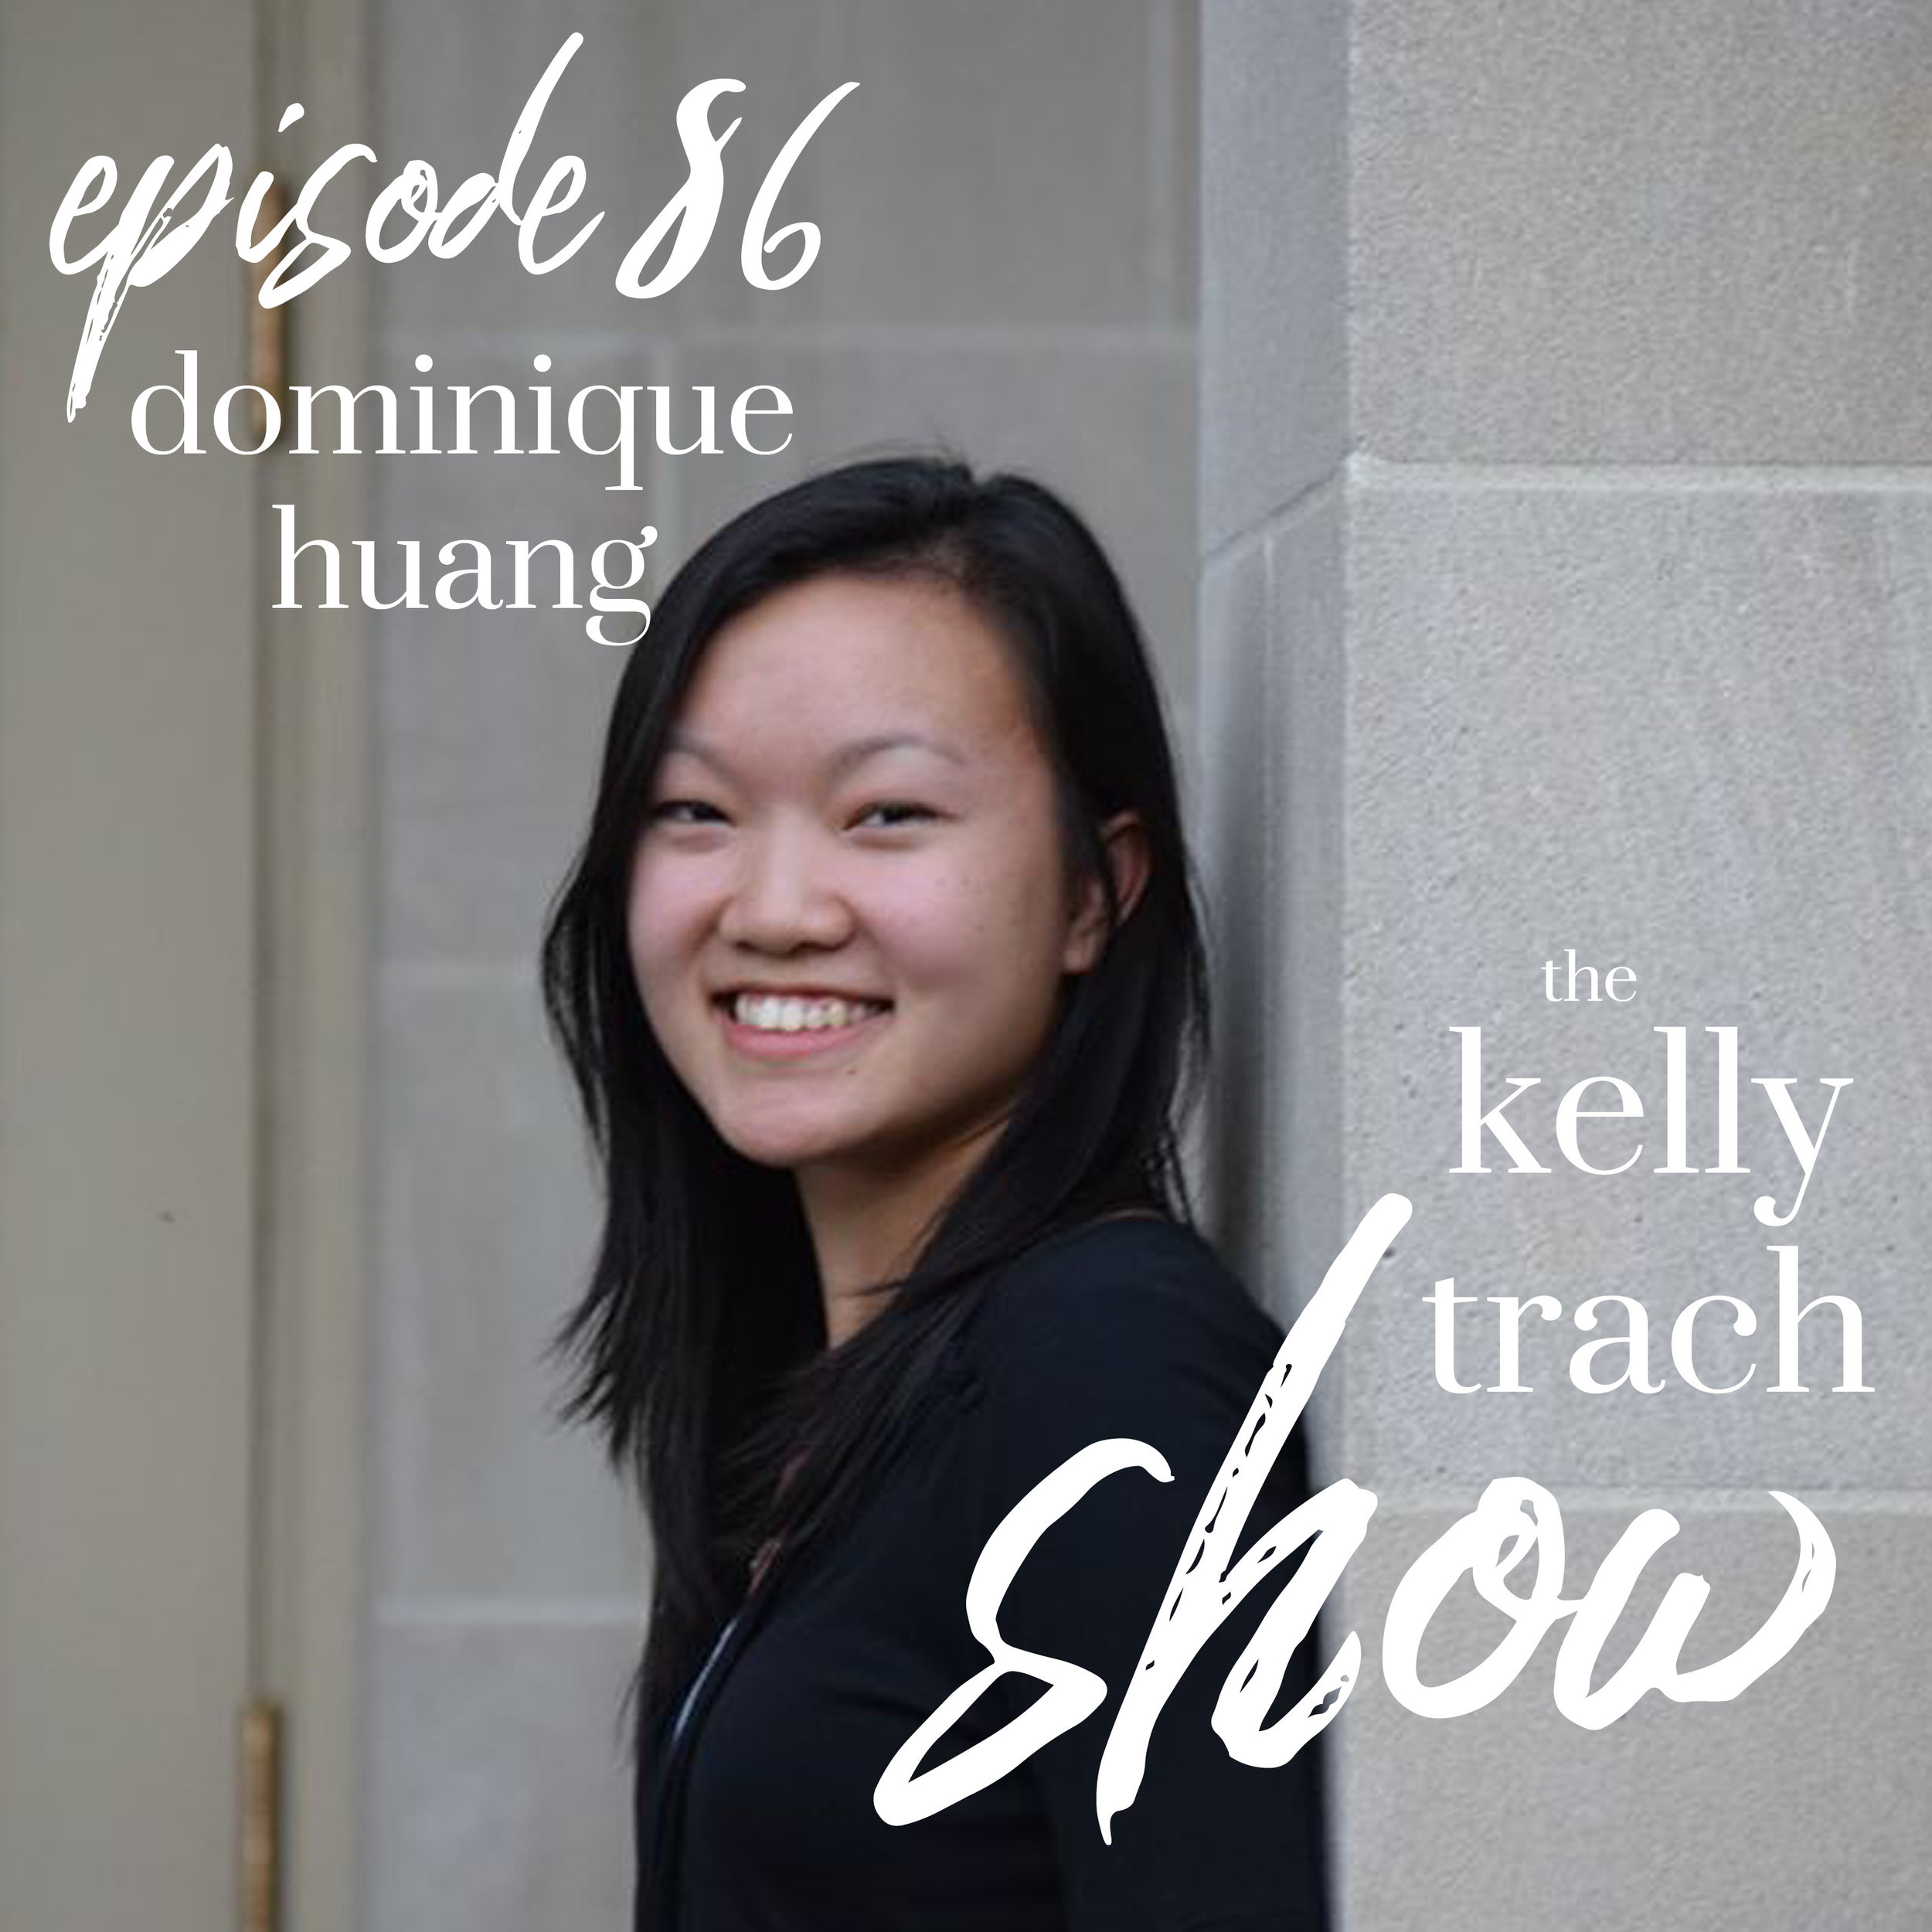 86 - Dominique Huang - The Kelly Trach Show Podcast.jpg